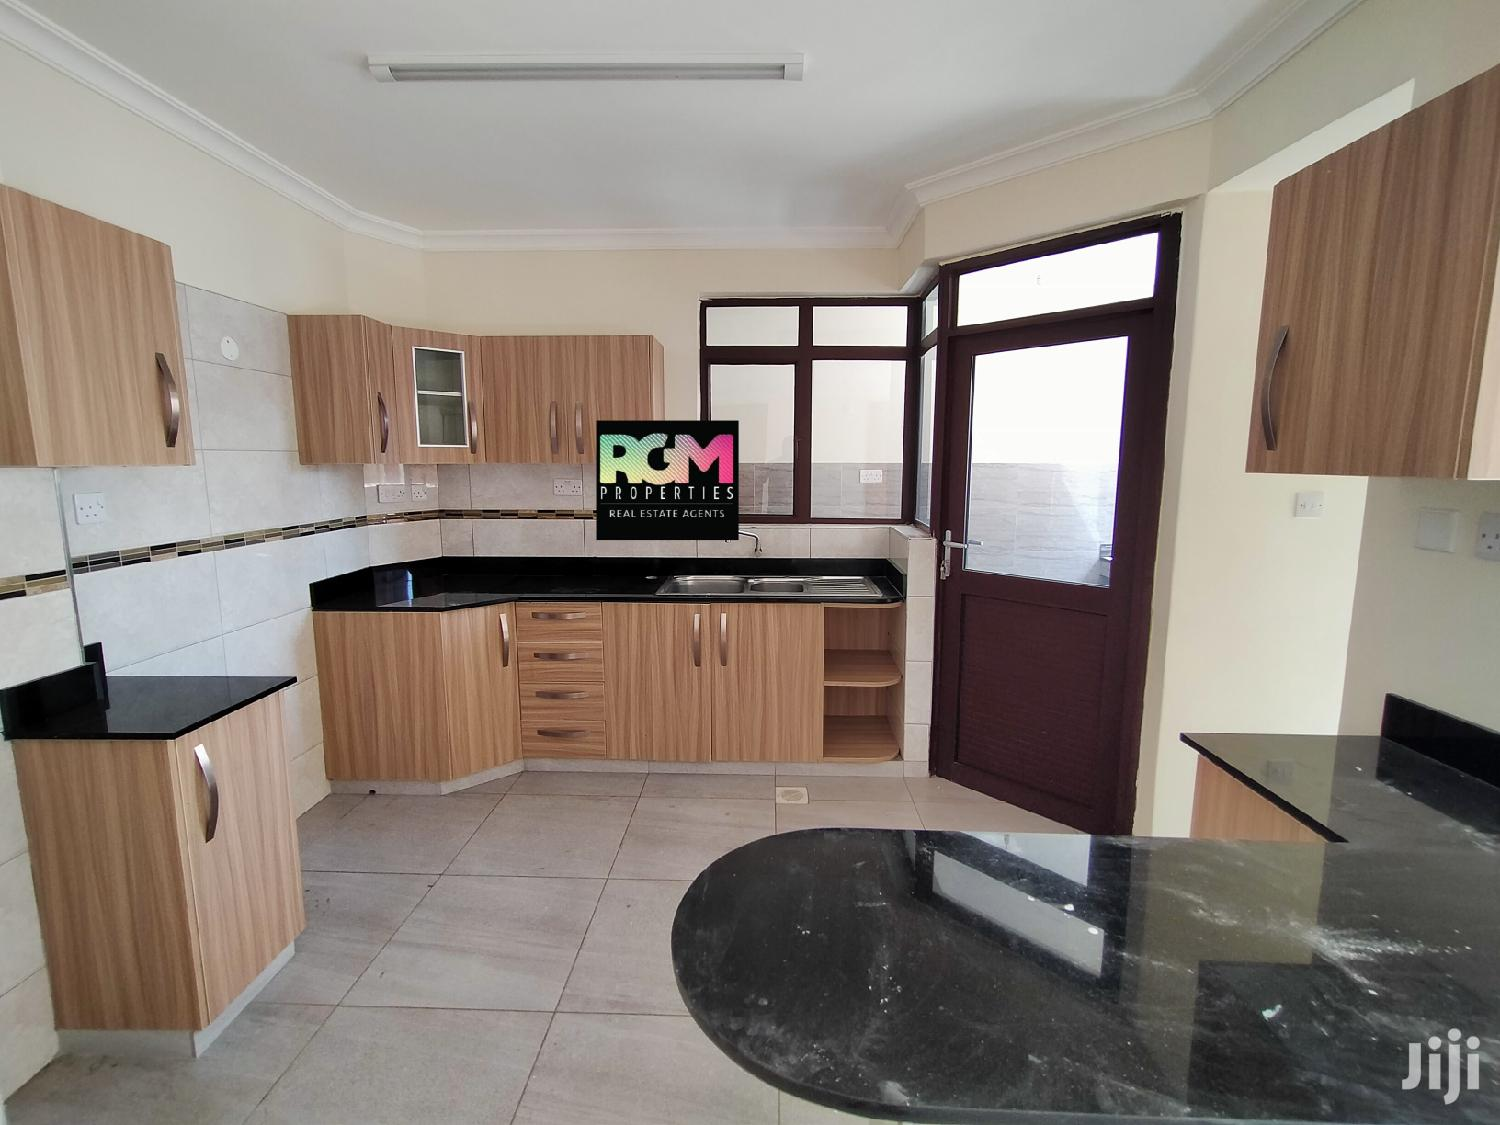 Executive 2 Bedroom Apartment To Let South B | Houses & Apartments For Rent for sale in Nairobi South, Nairobi, Kenya